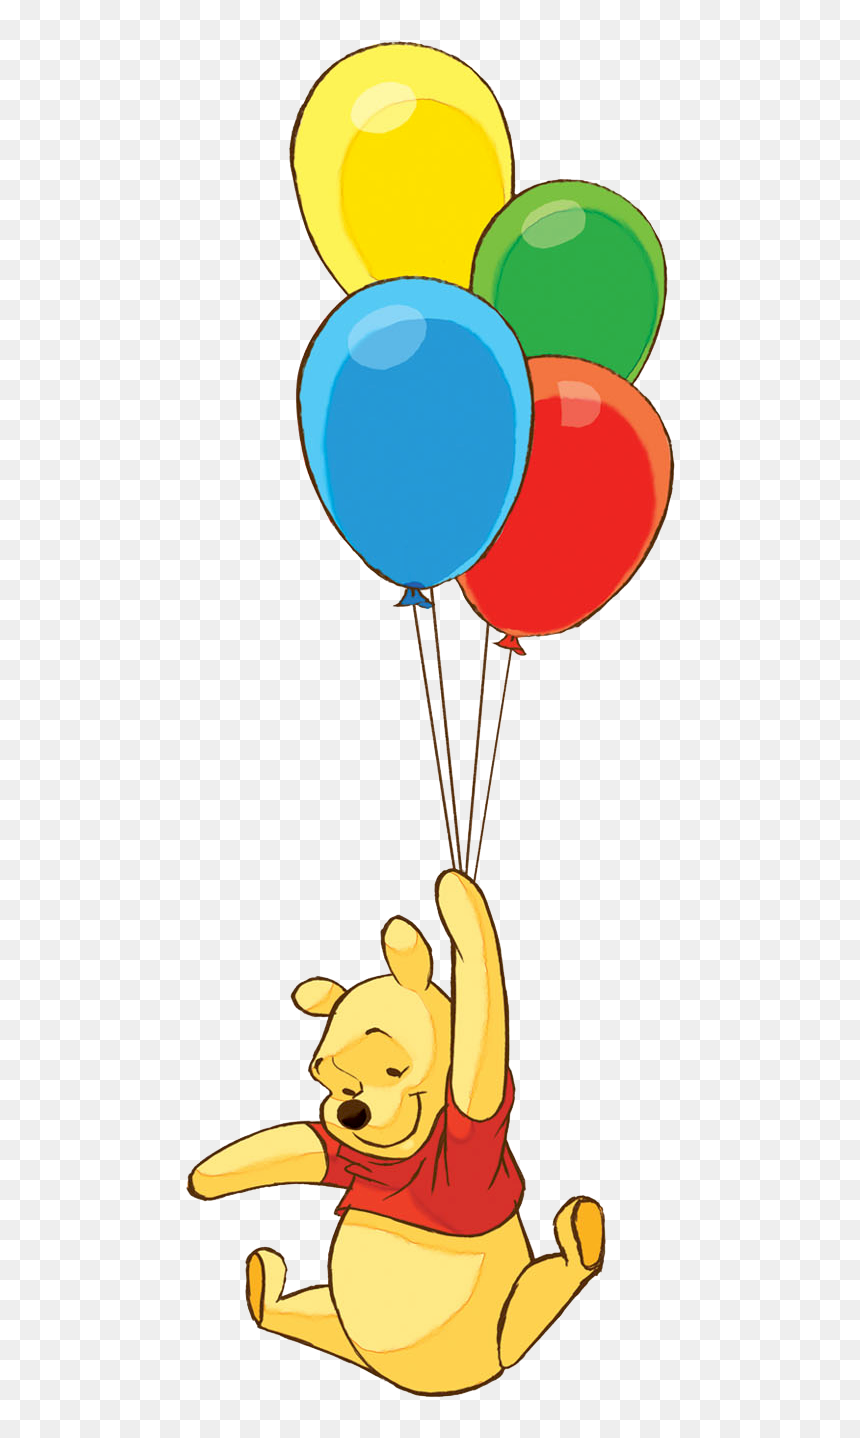 Transparent Baby Winnie The Pooh Png - Winnie The Pooh With Balloon, Png Download